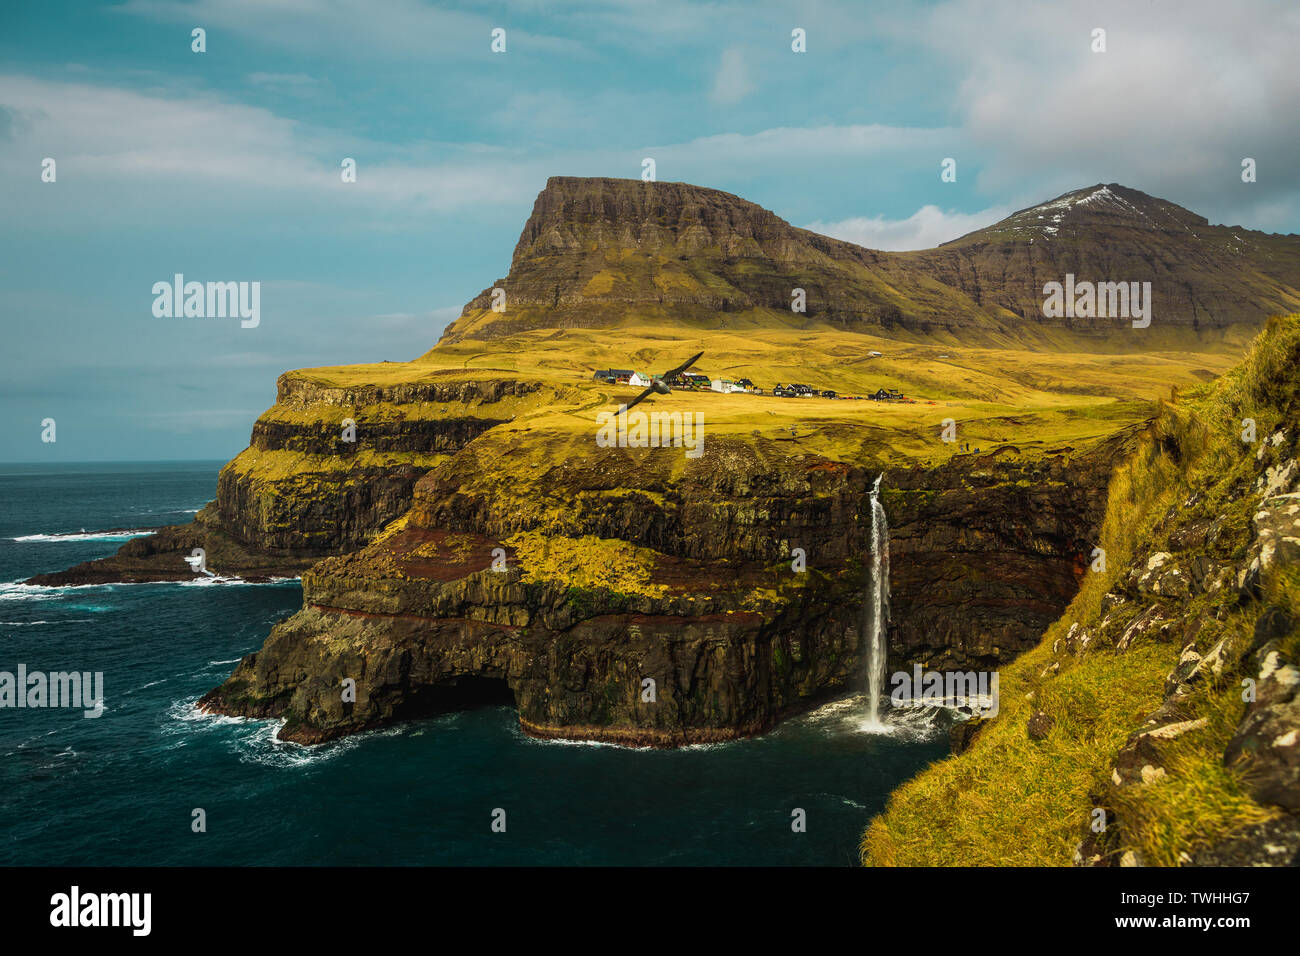 View onto famous Gasadalur waterfall from viewpoint during a sunny spring day with snow-covered mountain peaks and dark blue sea (Faroe Islands) - Stock Image